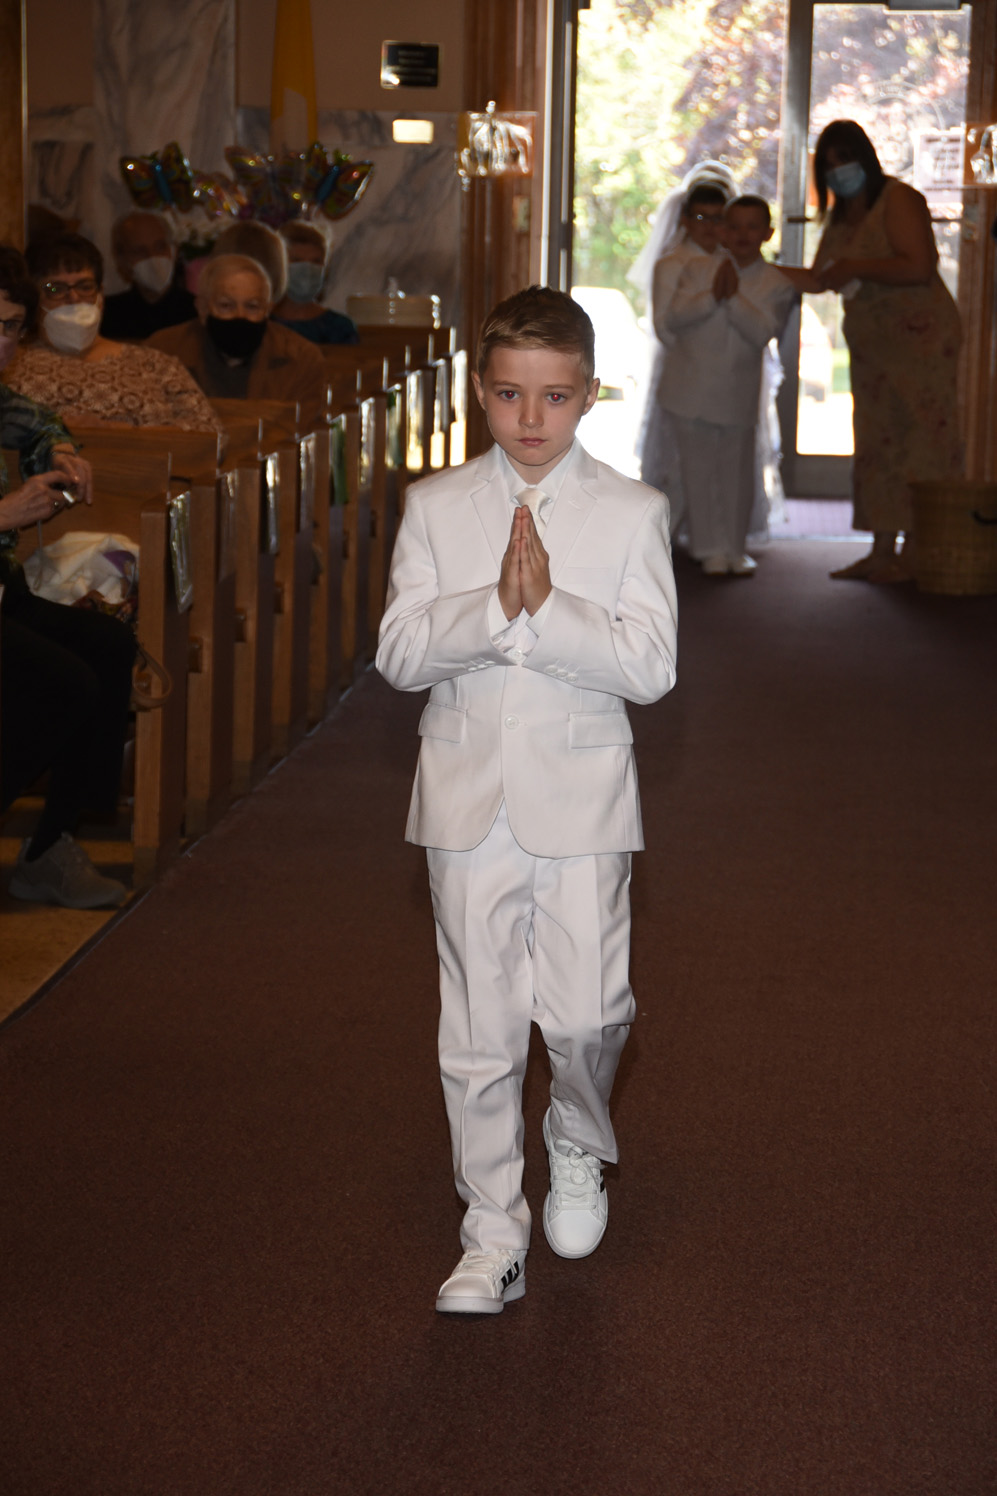 FIRST-COMMUNION-MAY-16-2021-39